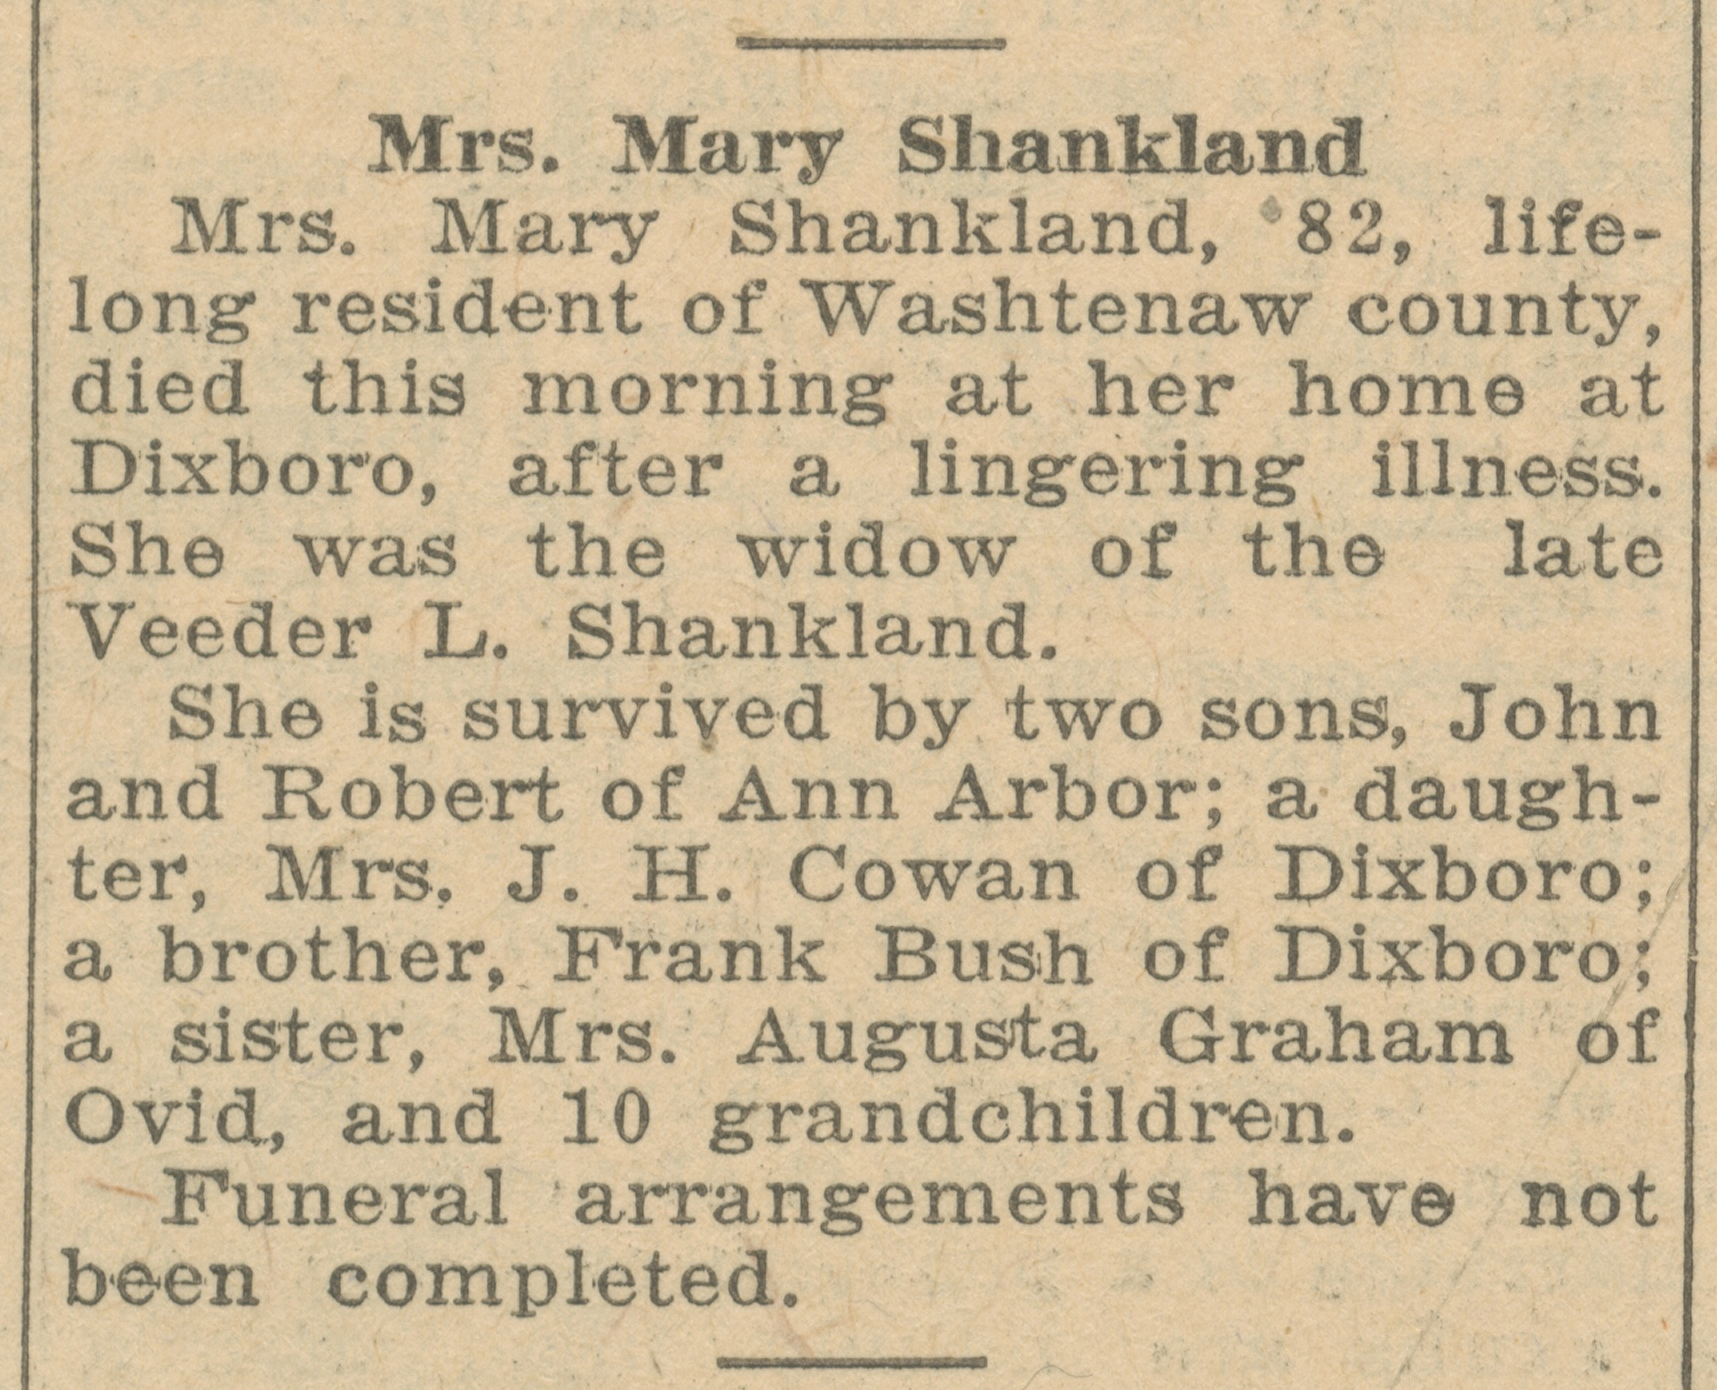 Mrs. Mary Shankland image